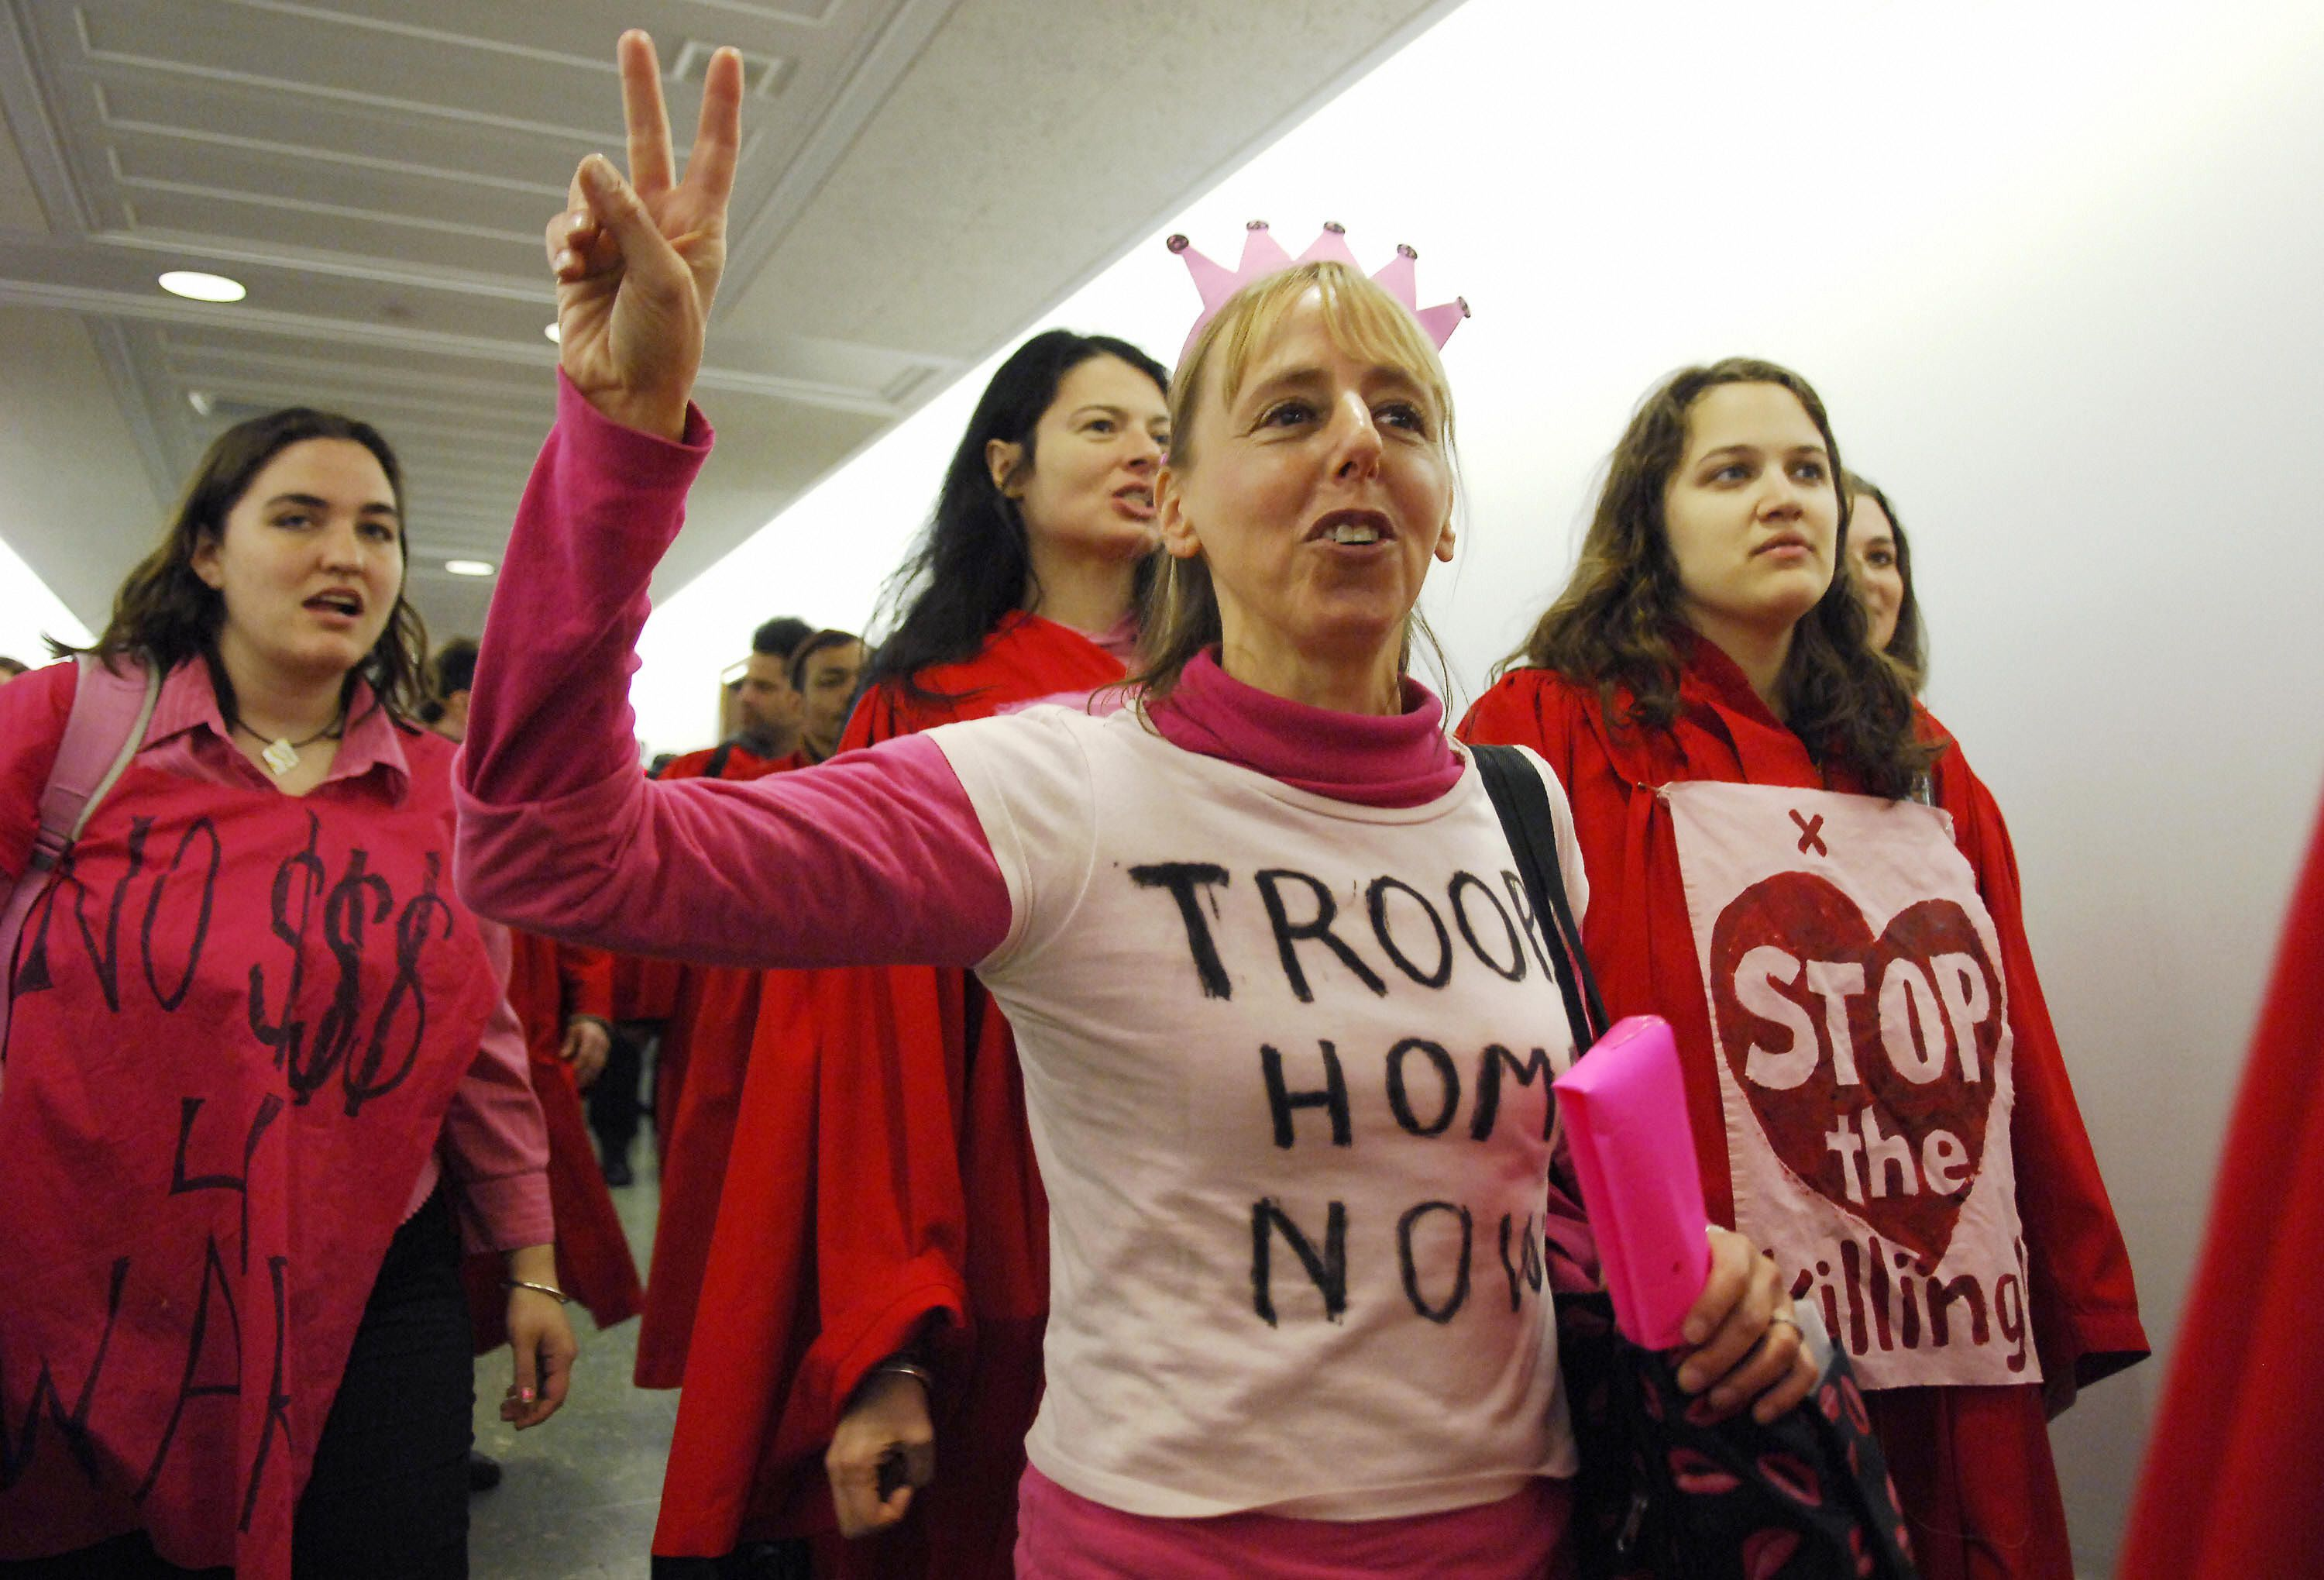 Medea Benjamin, cofounder of anti-war group CodePink and human rights organization Global Exchange, and fellow activists chant as former US Vice President Al Gore testifies before the Senate Global and Public Works Committee on Capitol Hill in Washington, DC, 21 March 2007.